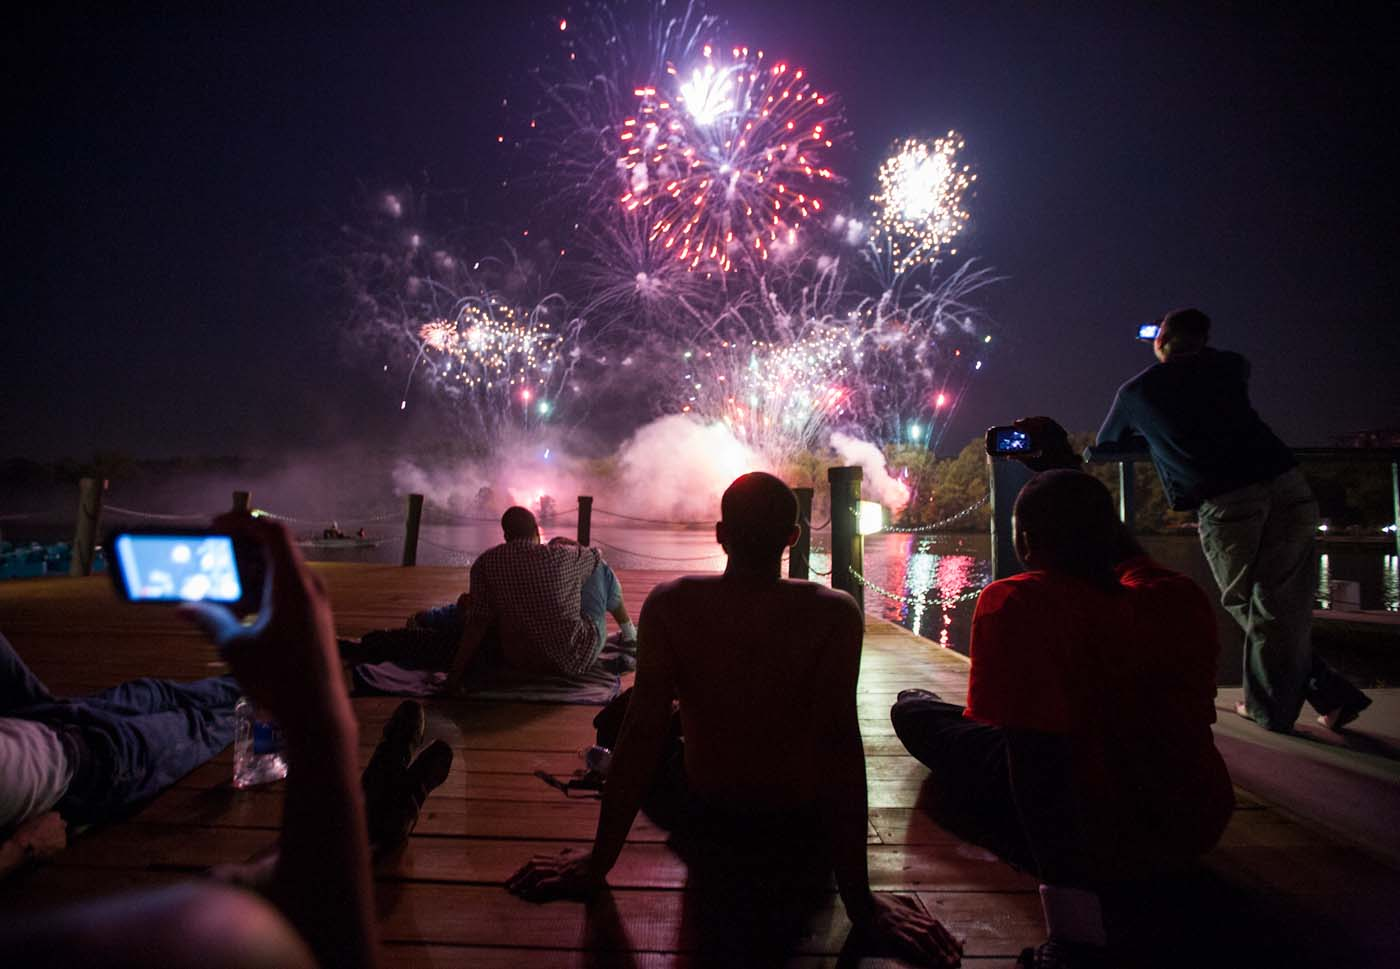 COLUMBIA, MD - JULY 04: People watch a fireworks display at the Lakefront. (Nate Pesce for Patuxent Homestead)